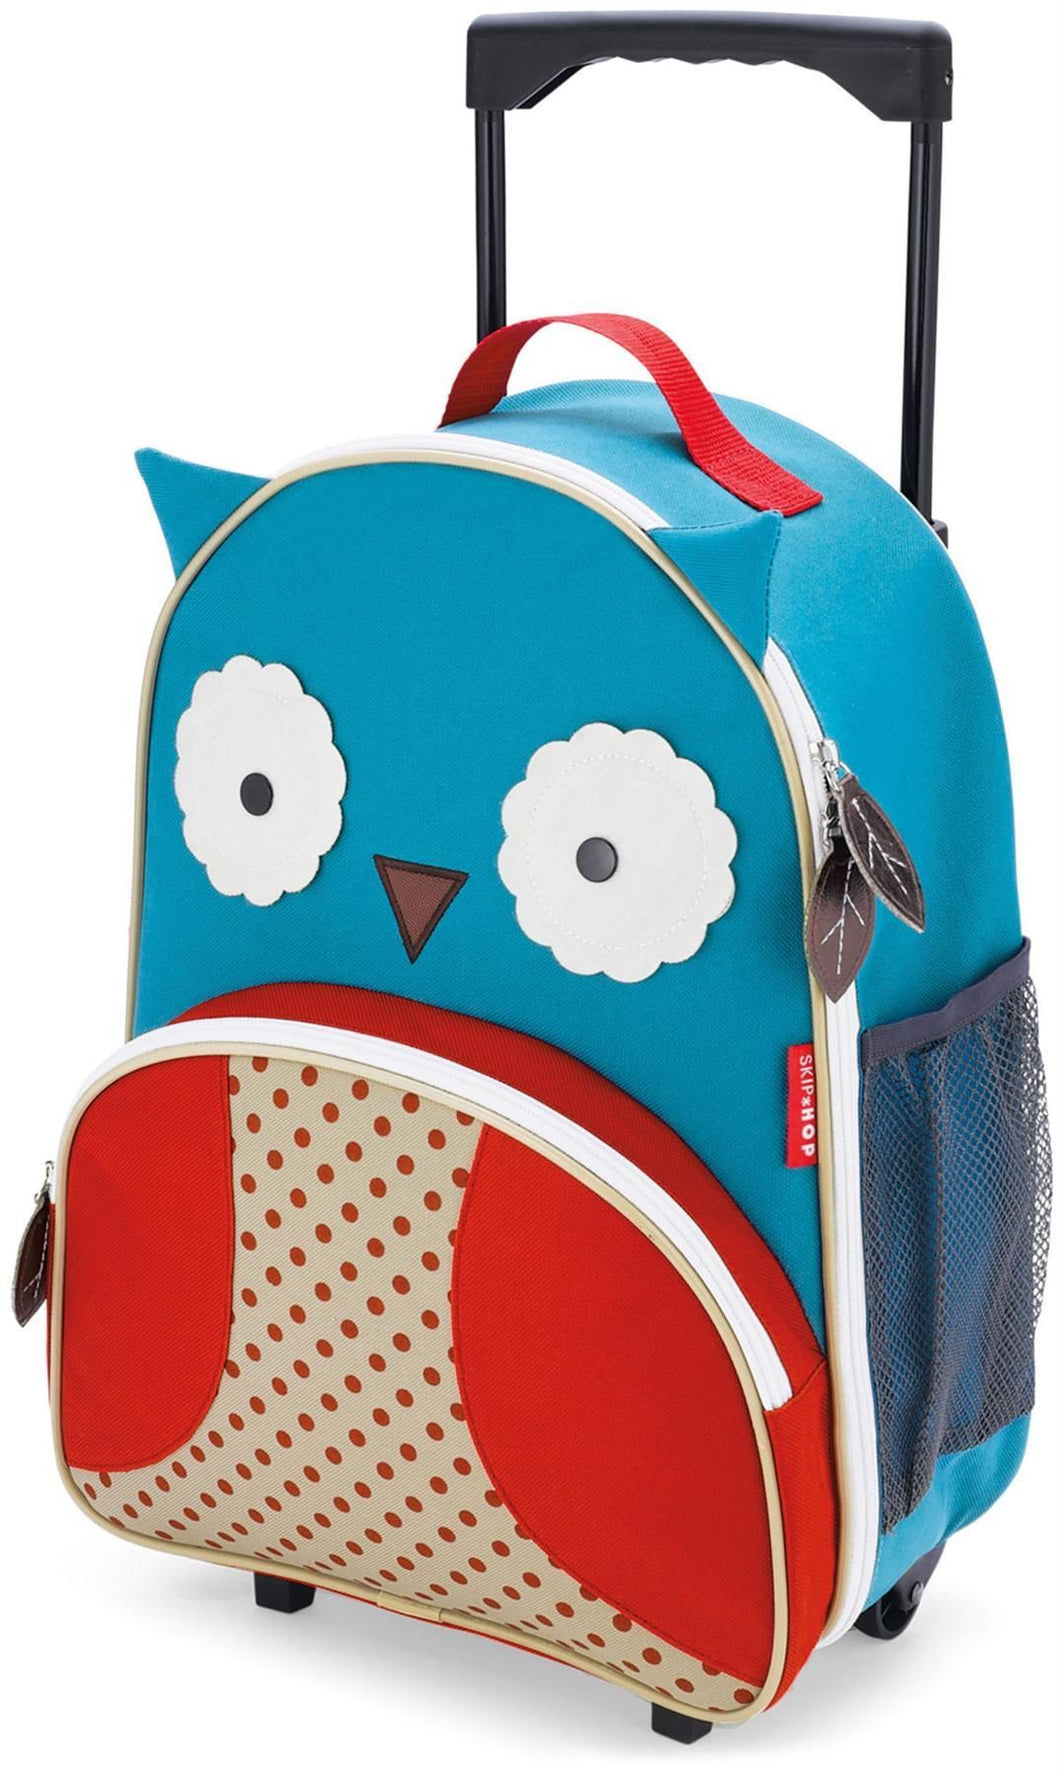 Skip Hop Zoo Kids Rolling Luggage - Owl - CeCe Fashion Boutique